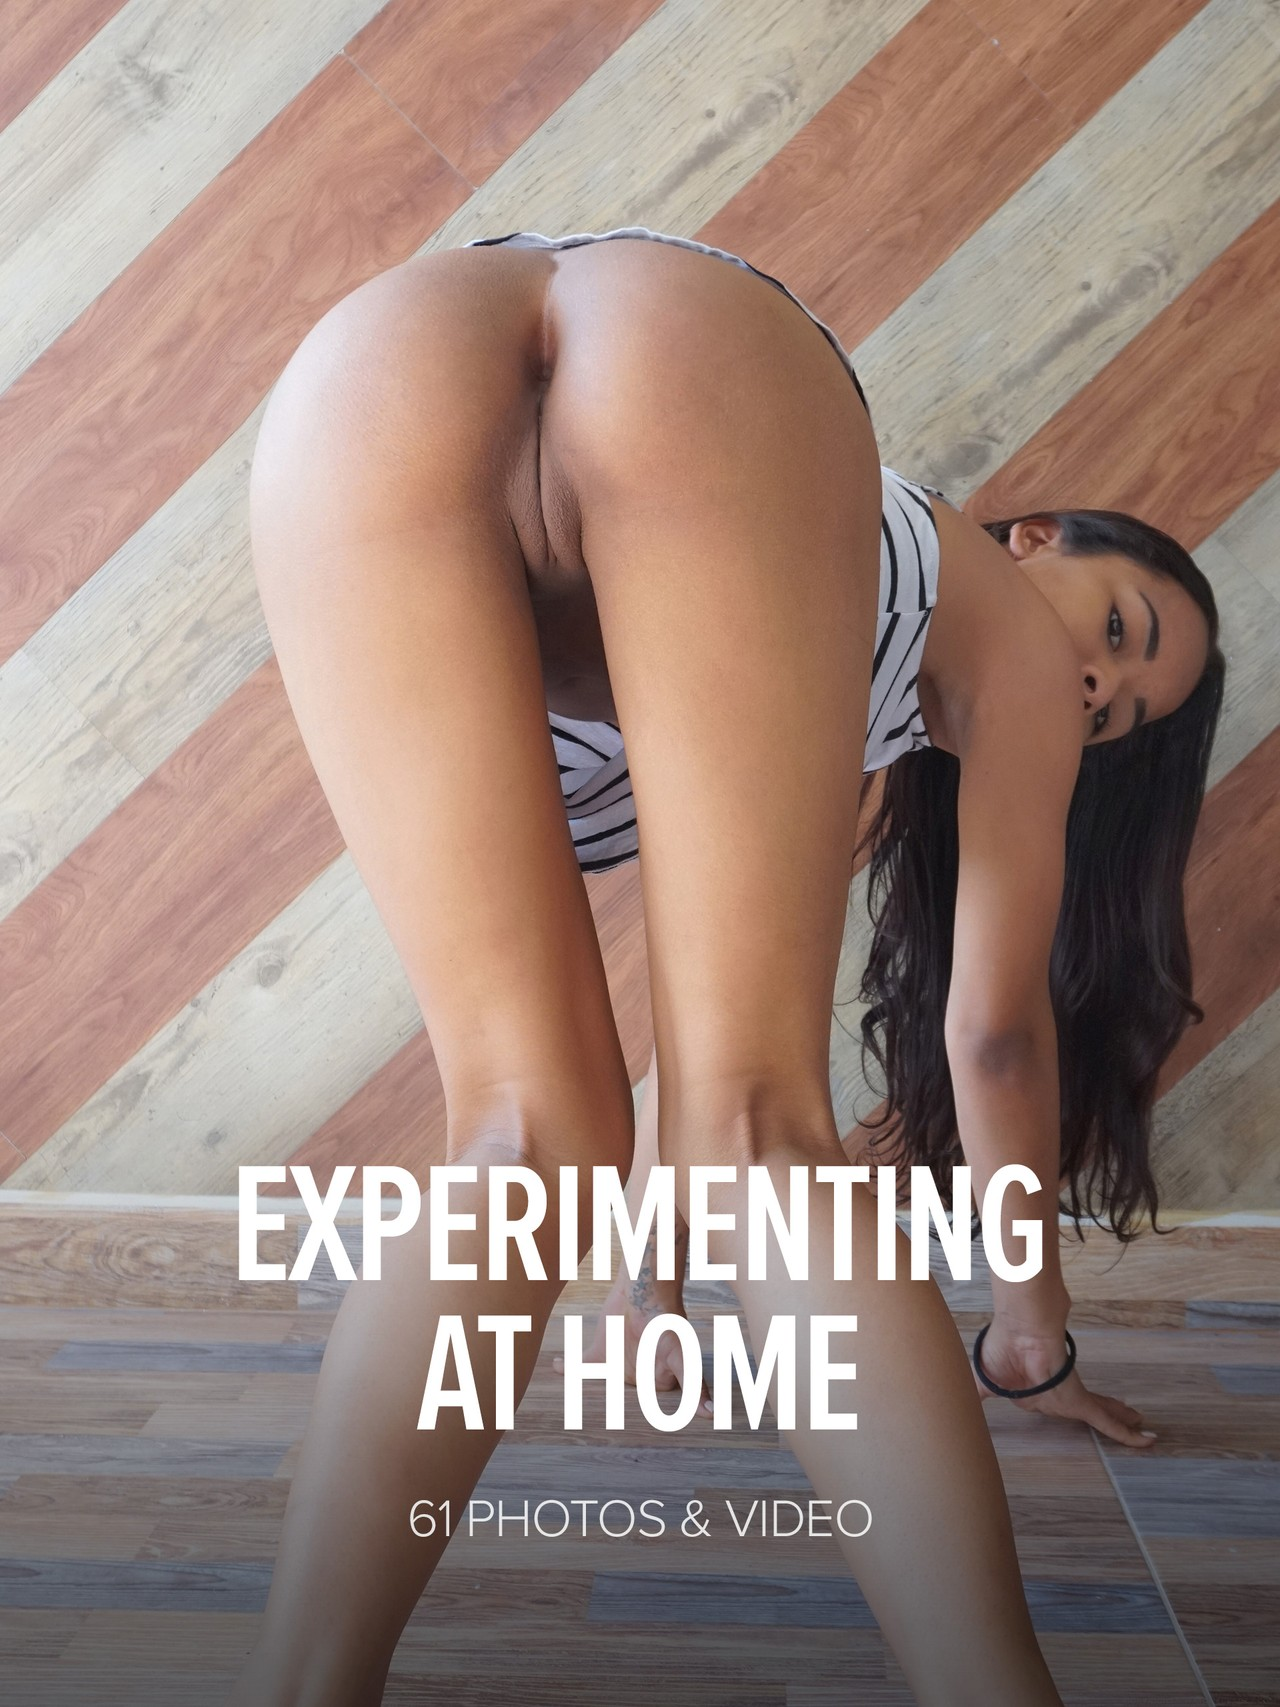 Liloo: Experimenting At Home